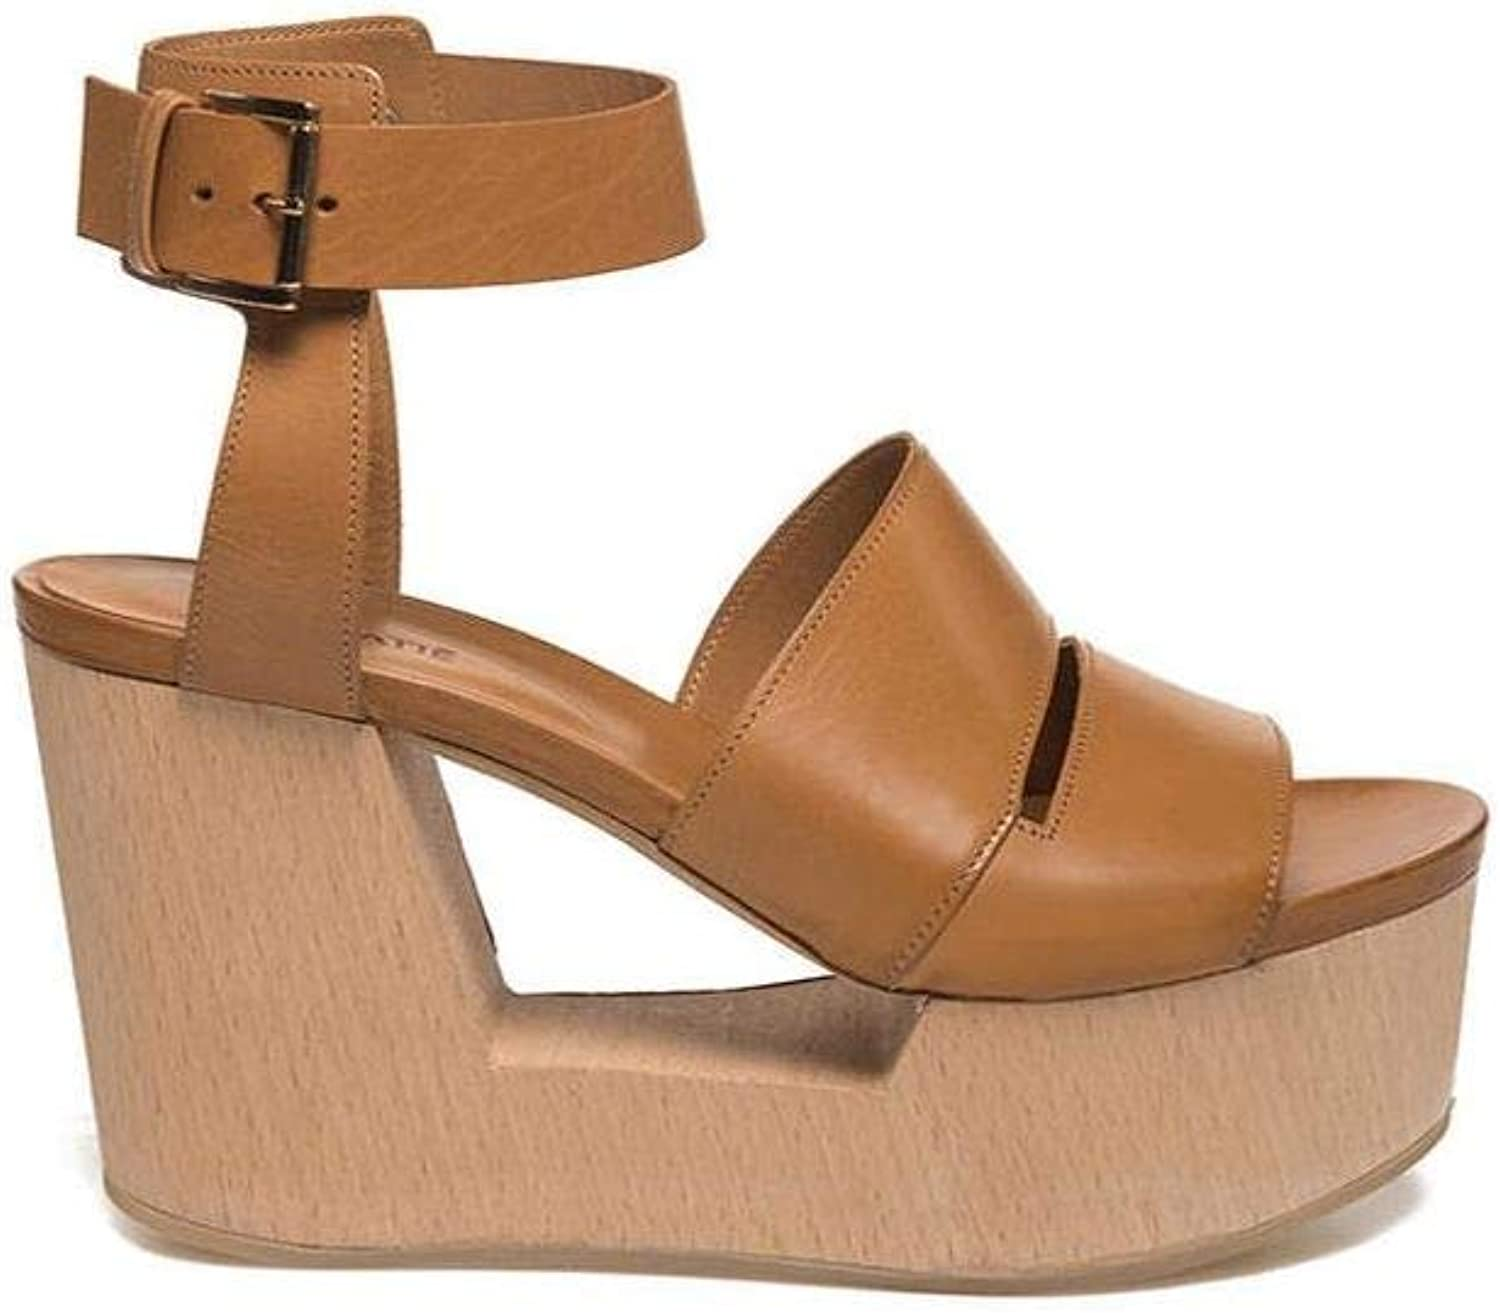 Vic Matie' - Hide-Colourot Sandal ON Perforated Wooden Wedge - 1Q5526DQ76CQQB119